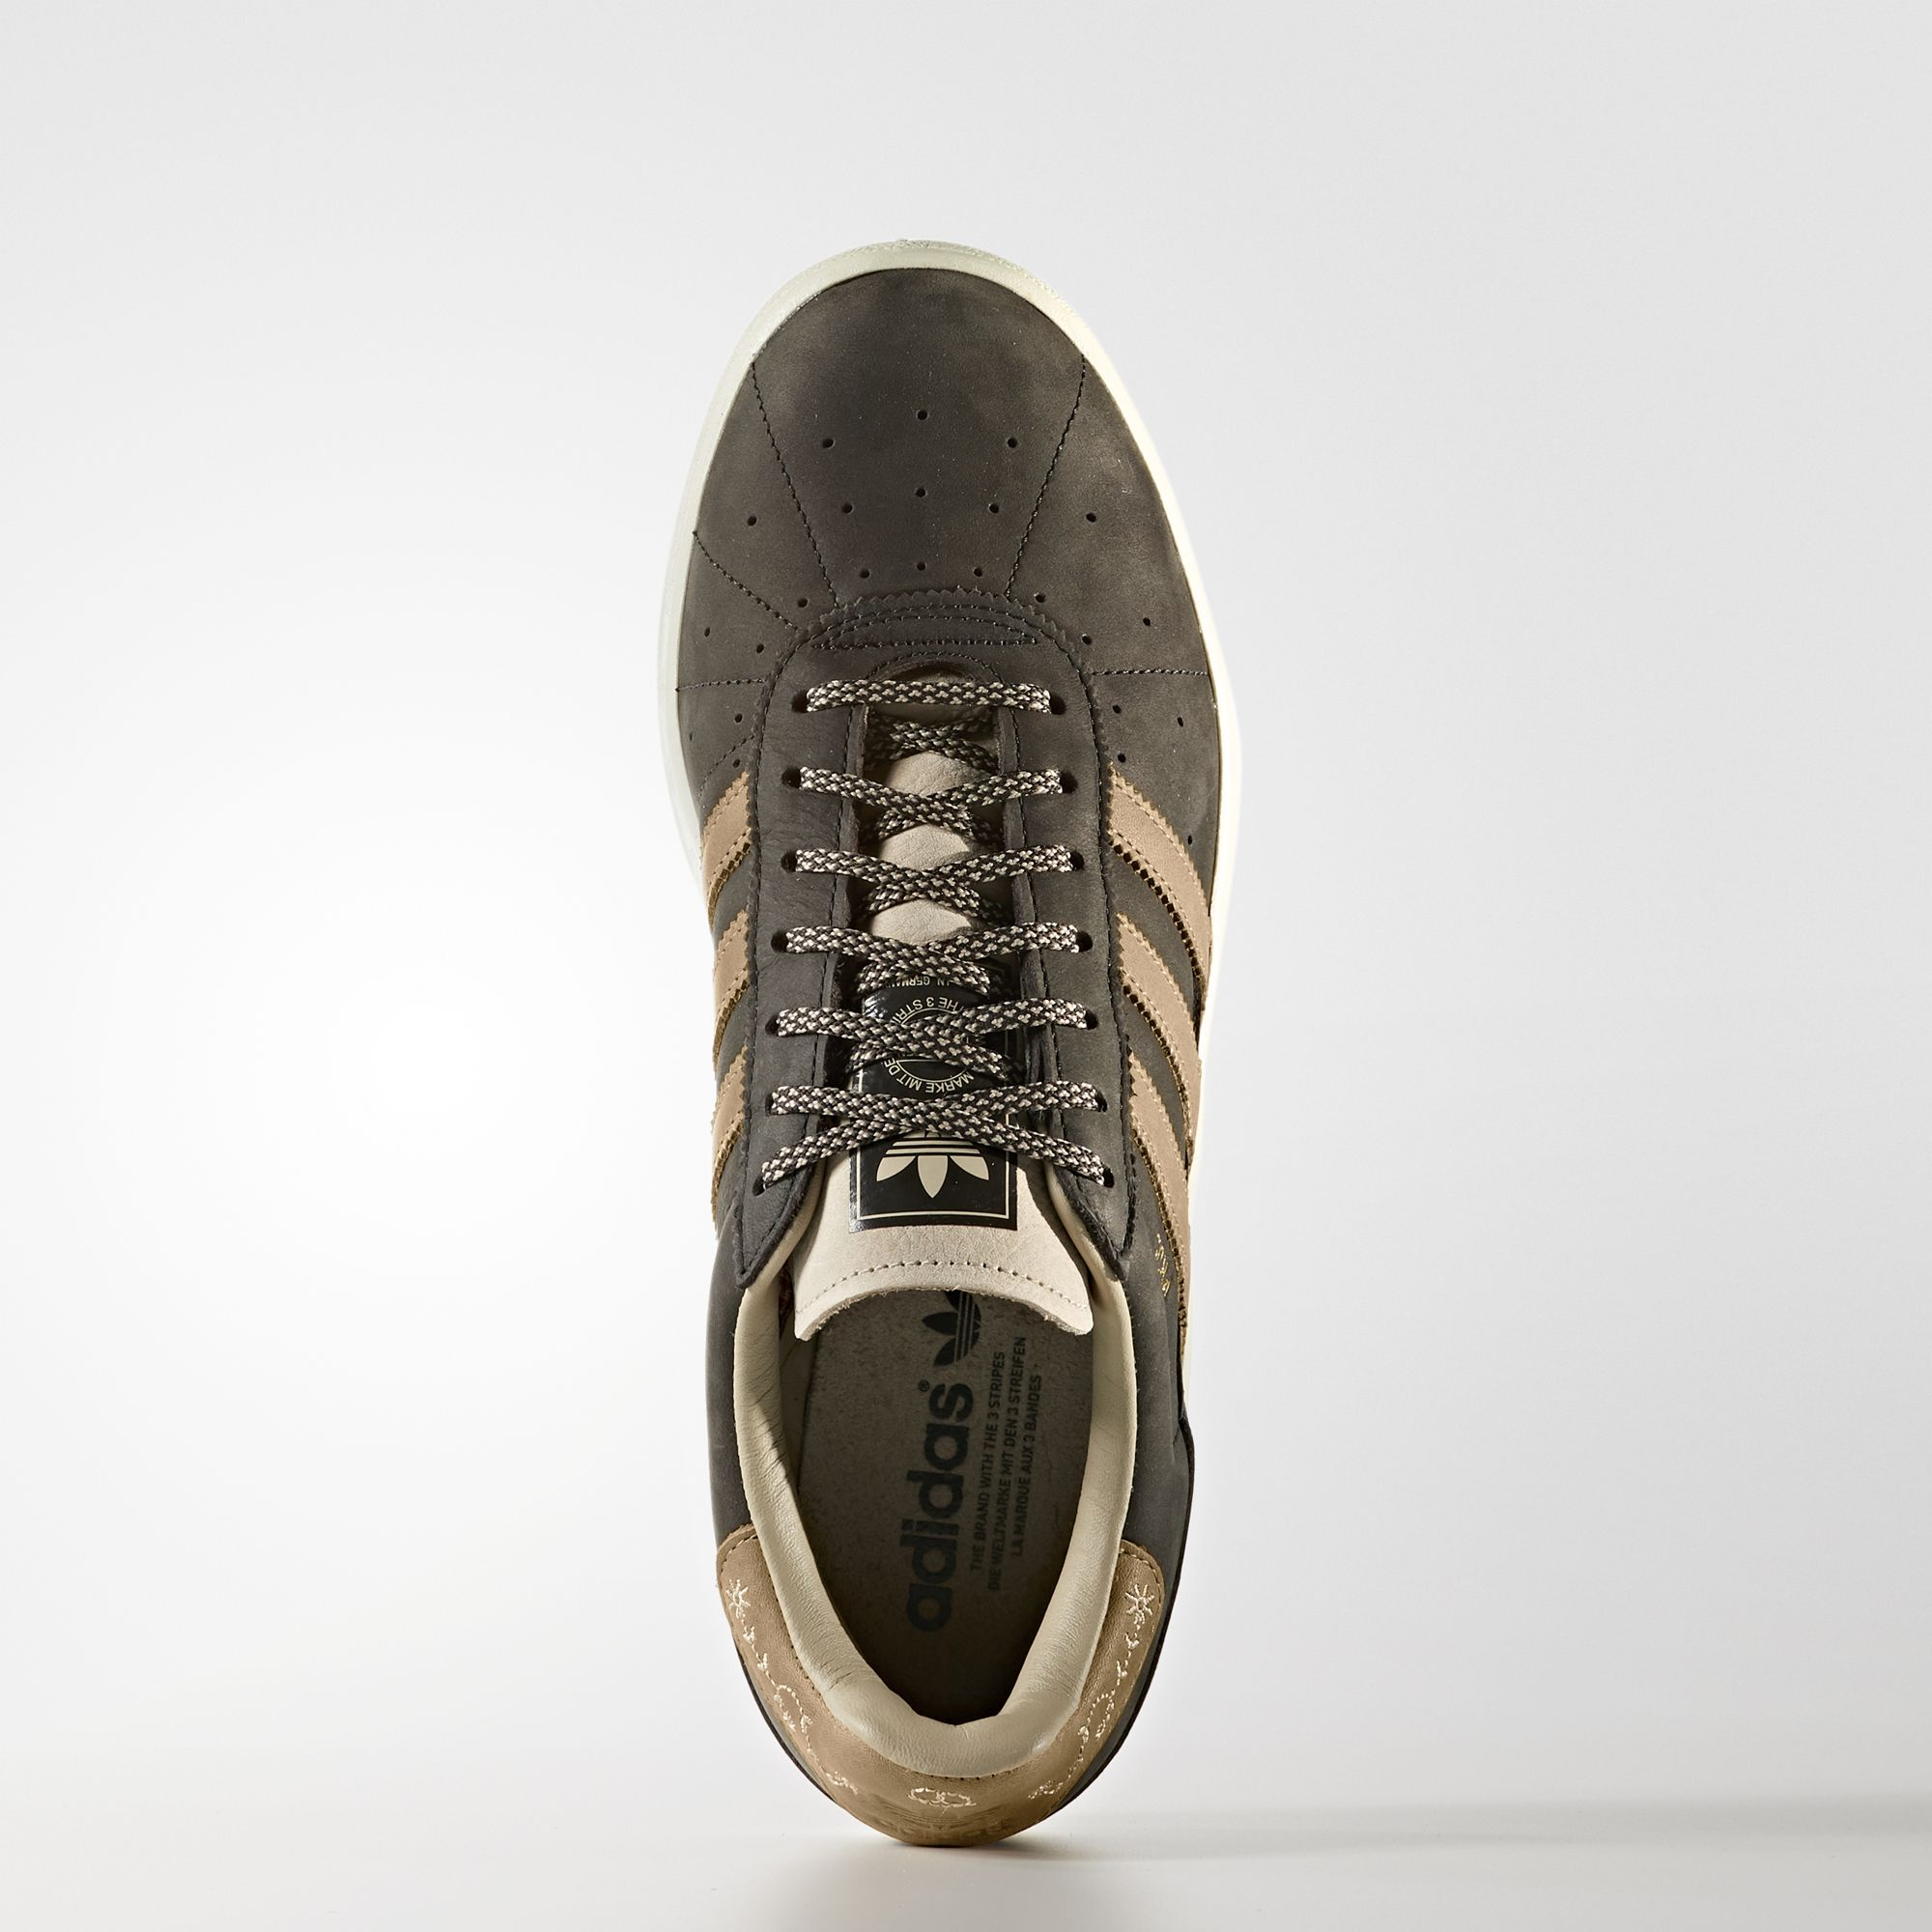 adidas releases beer proof sneakers